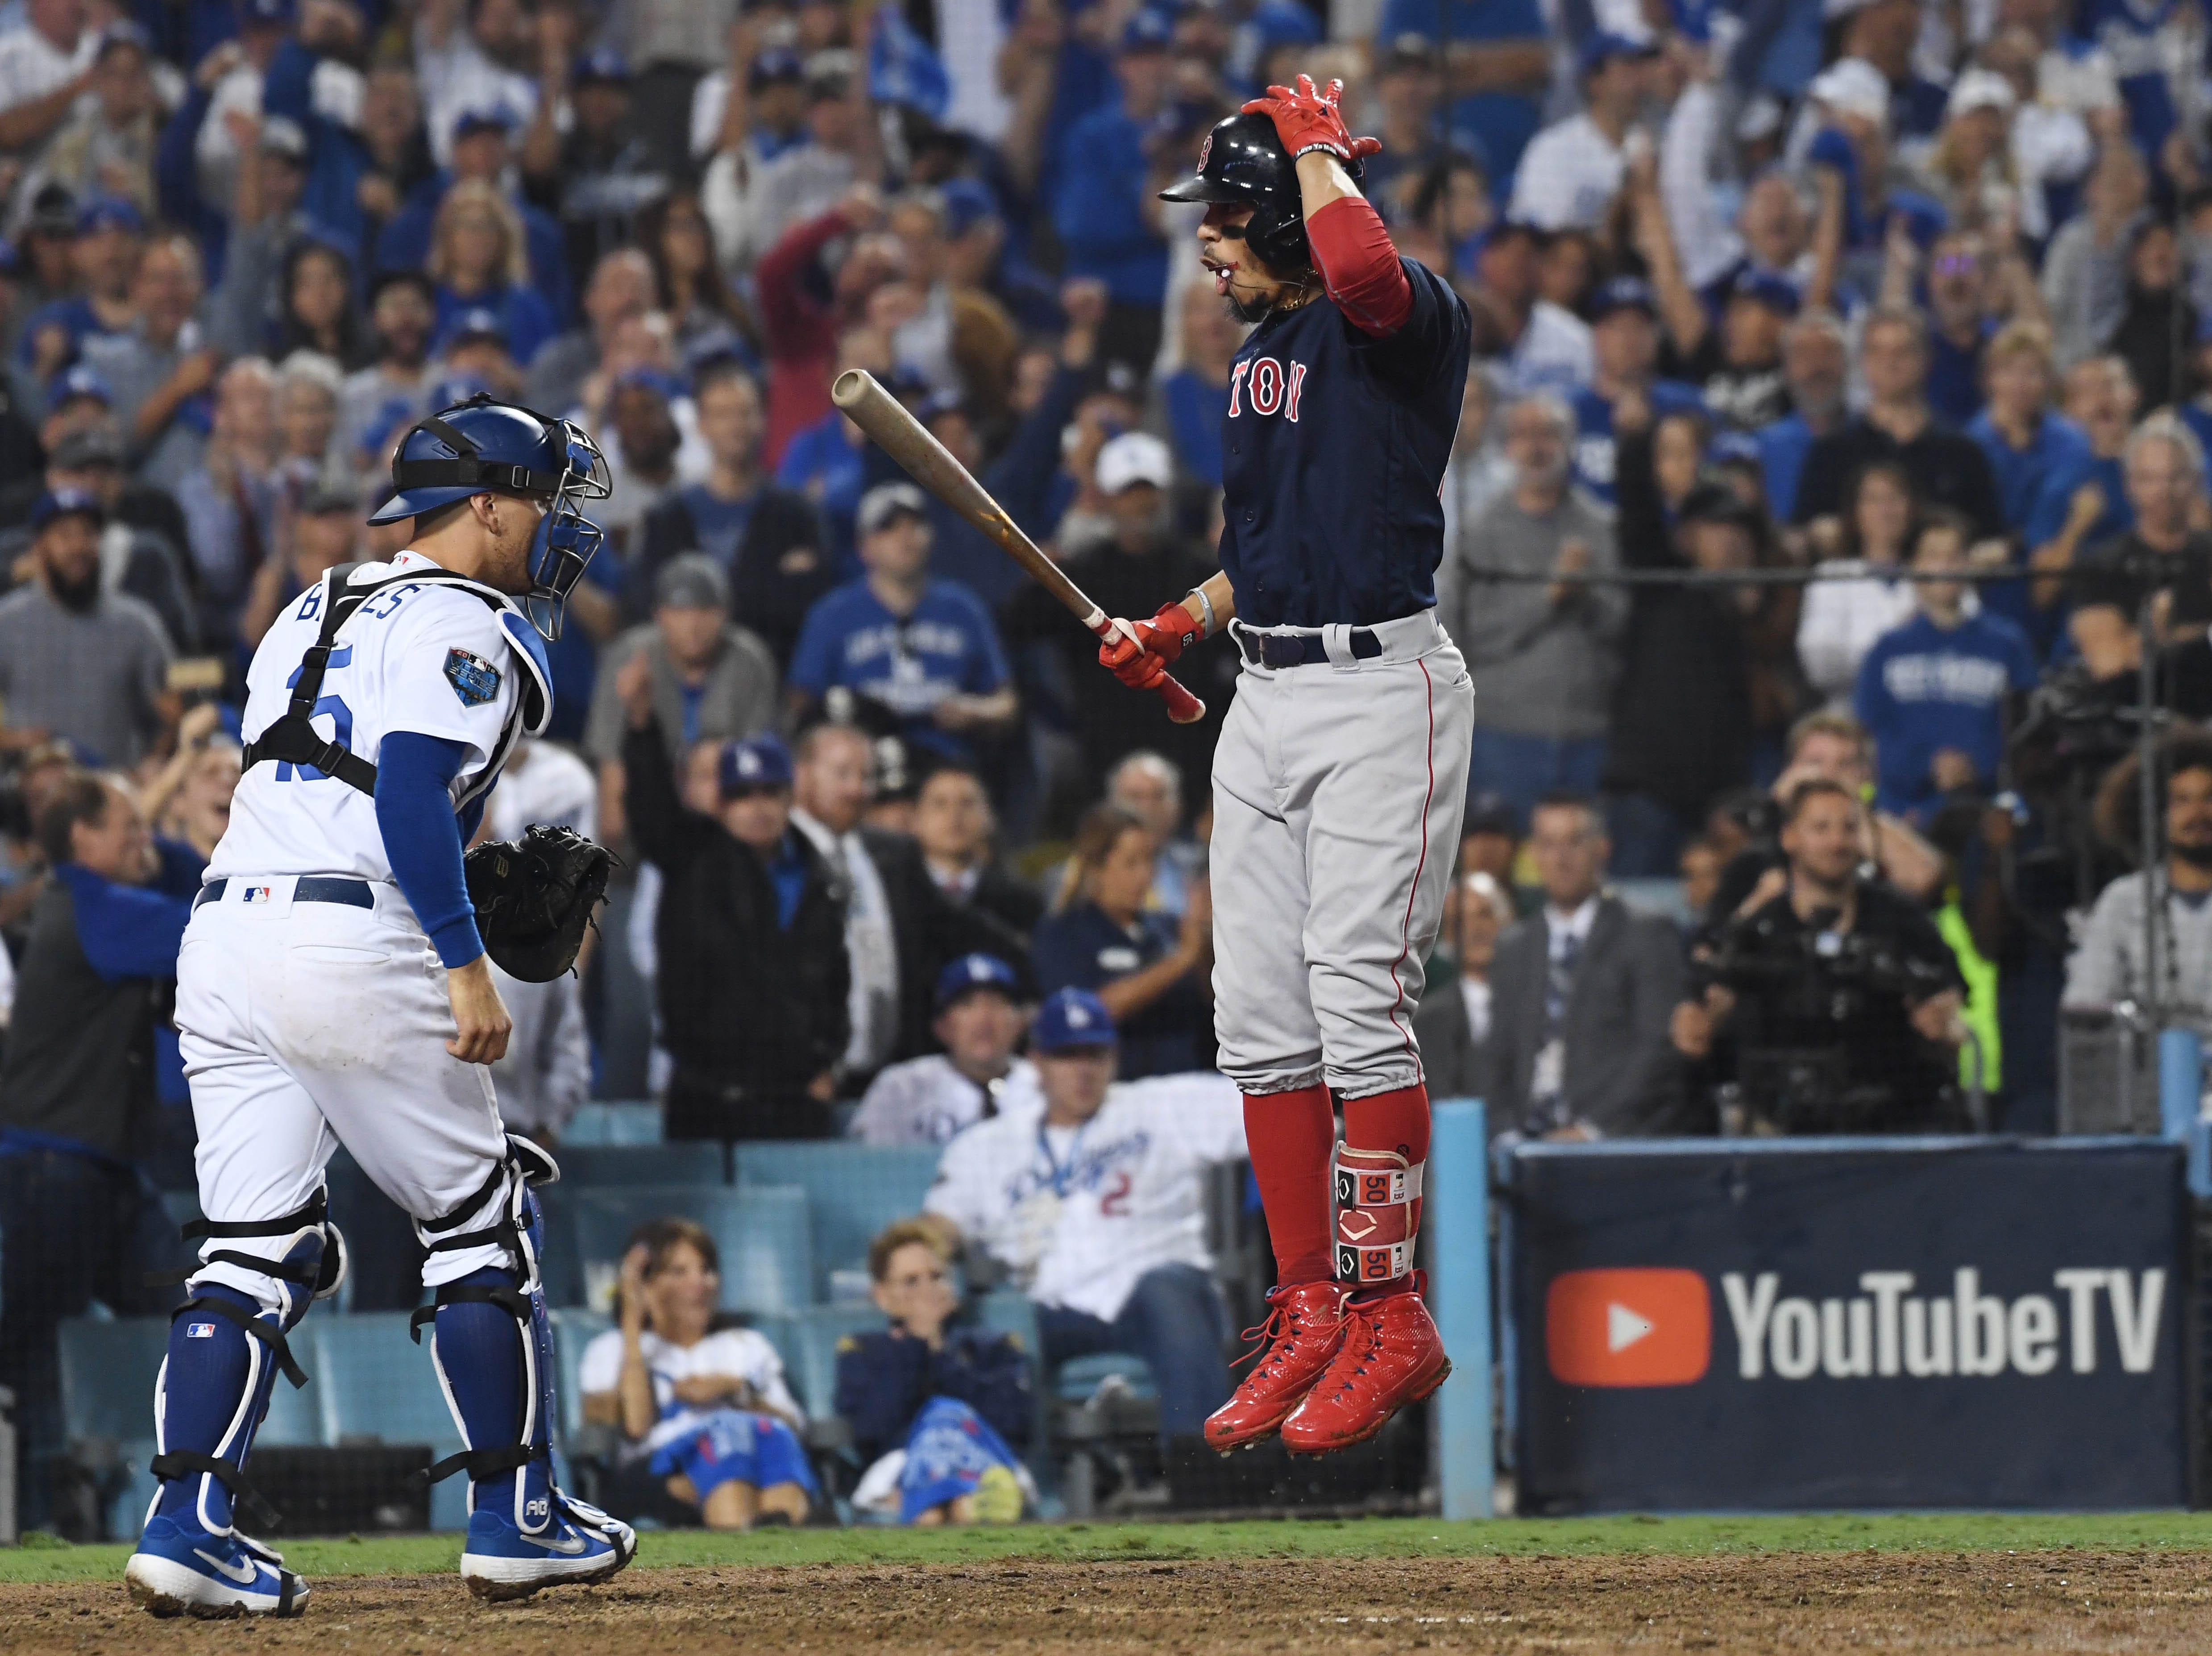 Game 3 at Dodger Stadium: Mookie Betts reacts to a called third strike in the 15th inning.